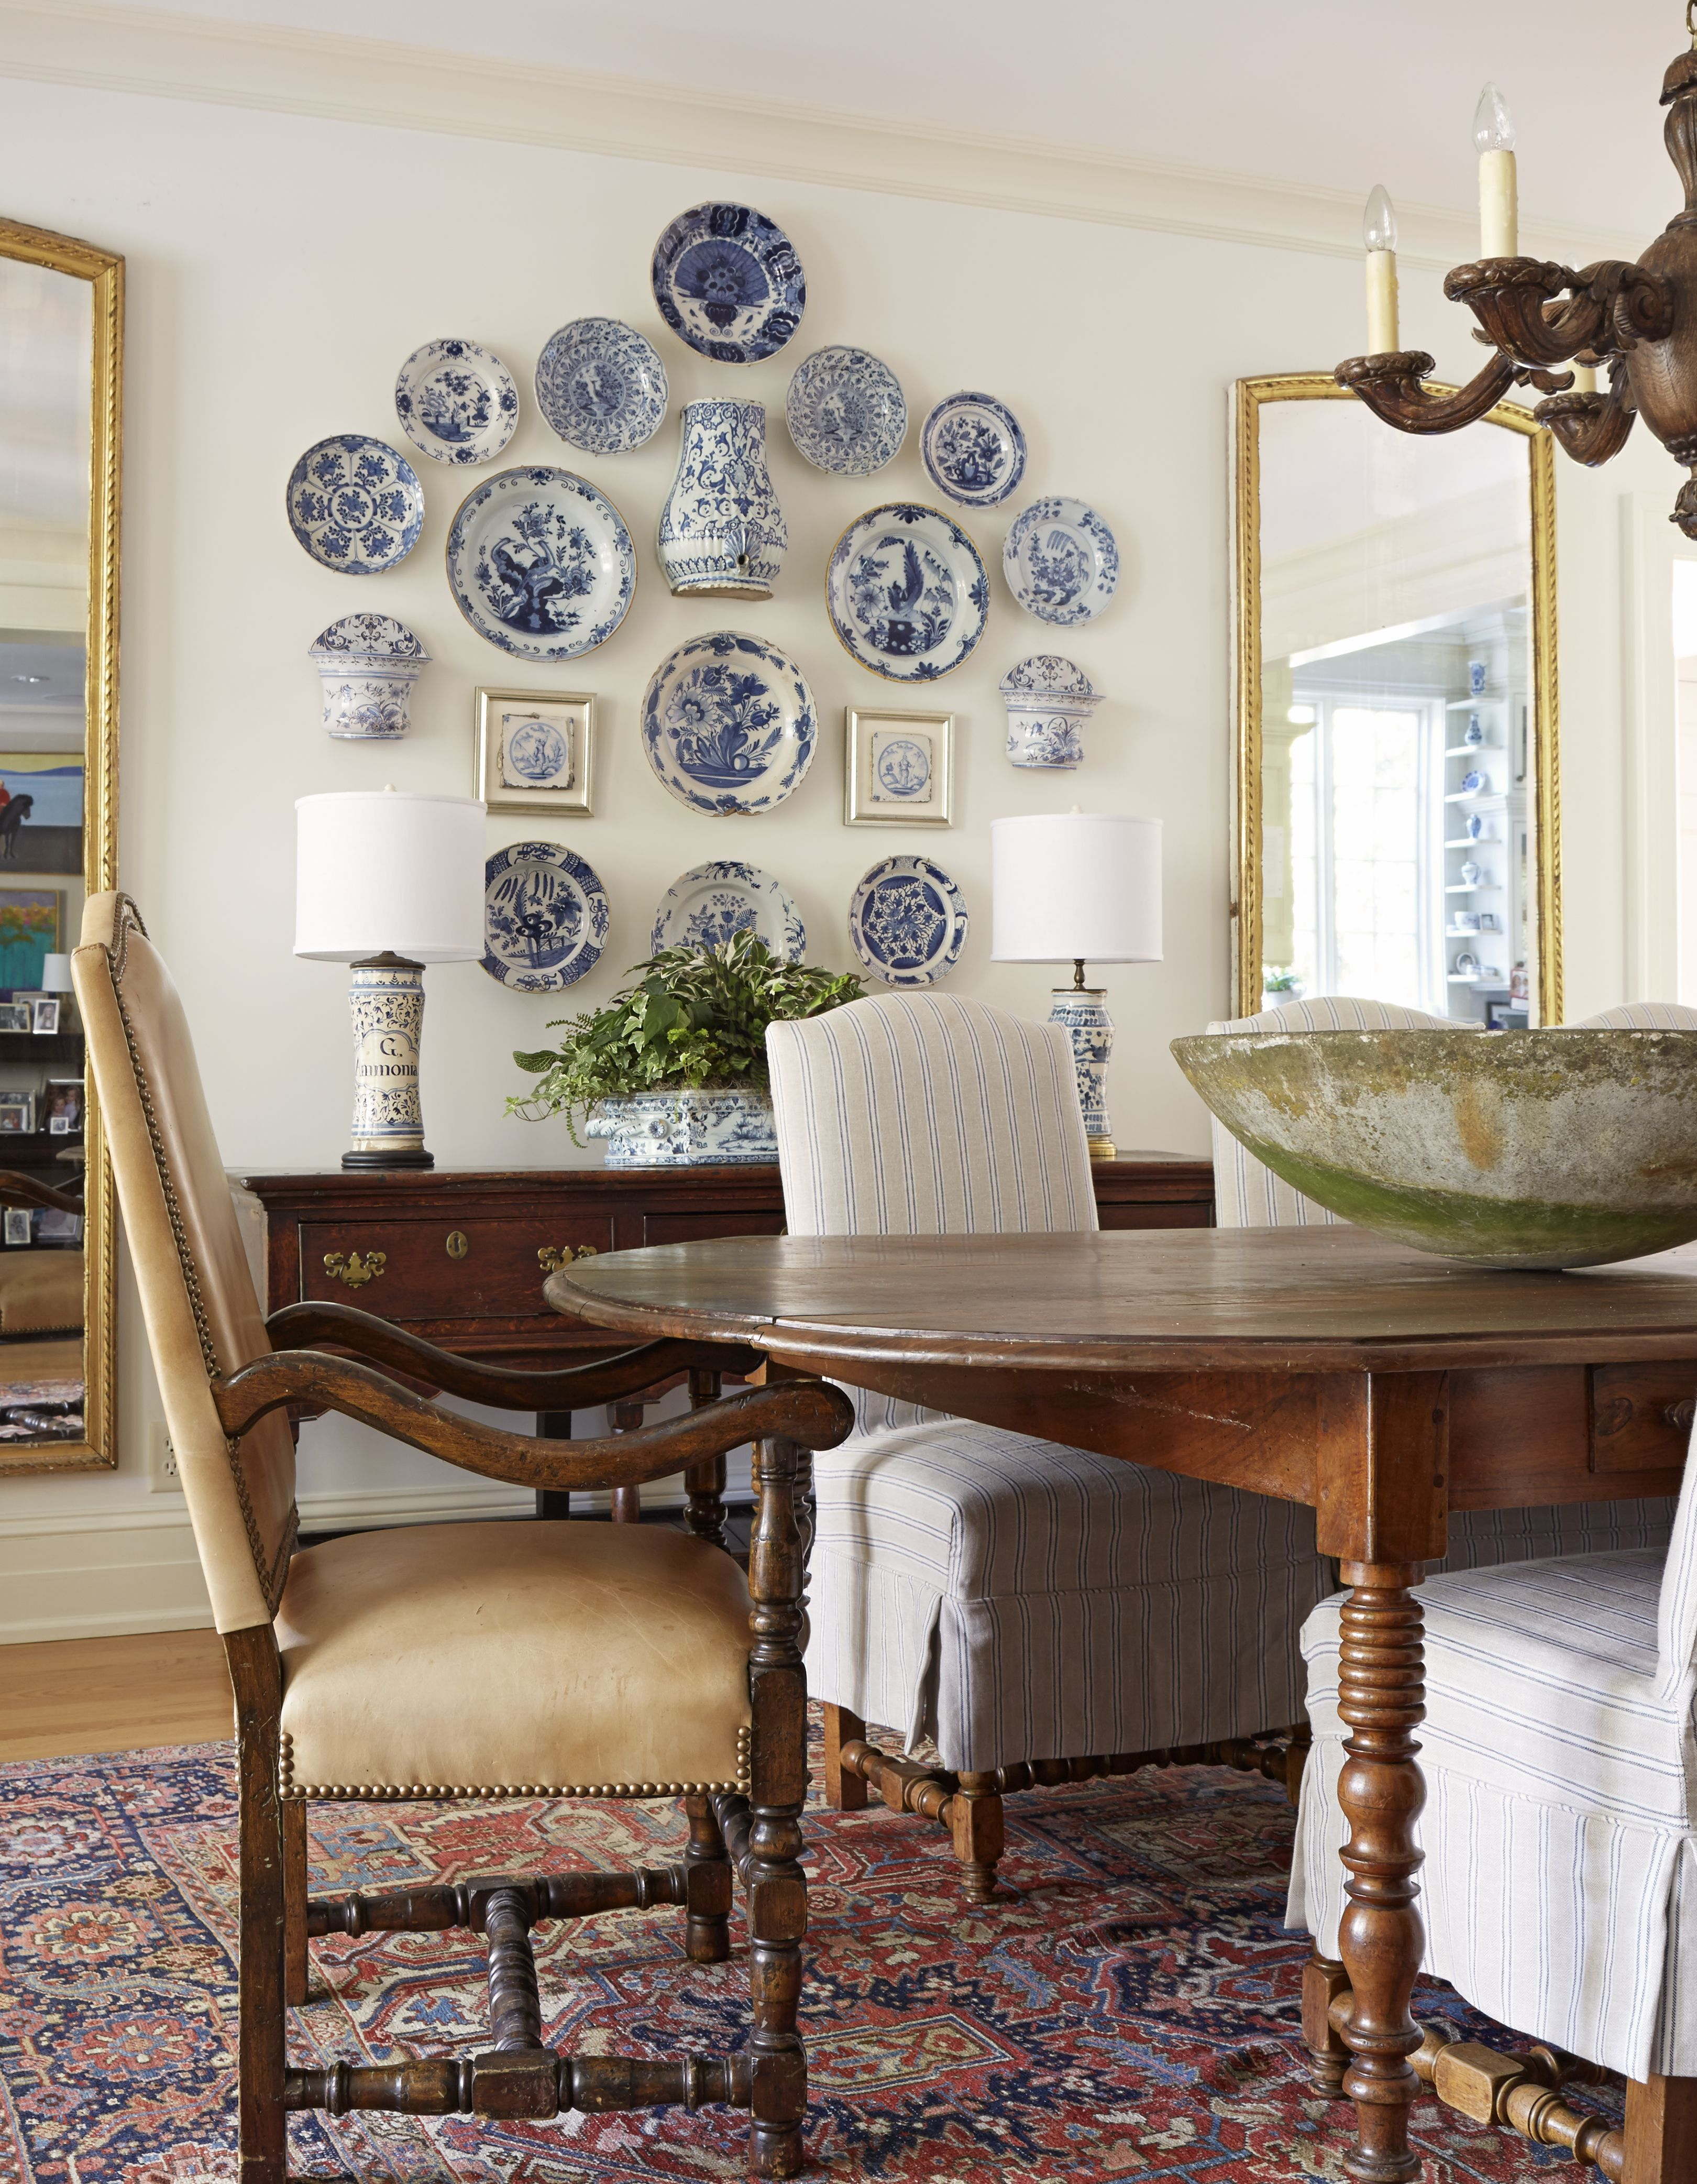 Image Result For Dutch Delft Dining Room French Country Dining Room Decor Dining Room Small Country Dining Rooms